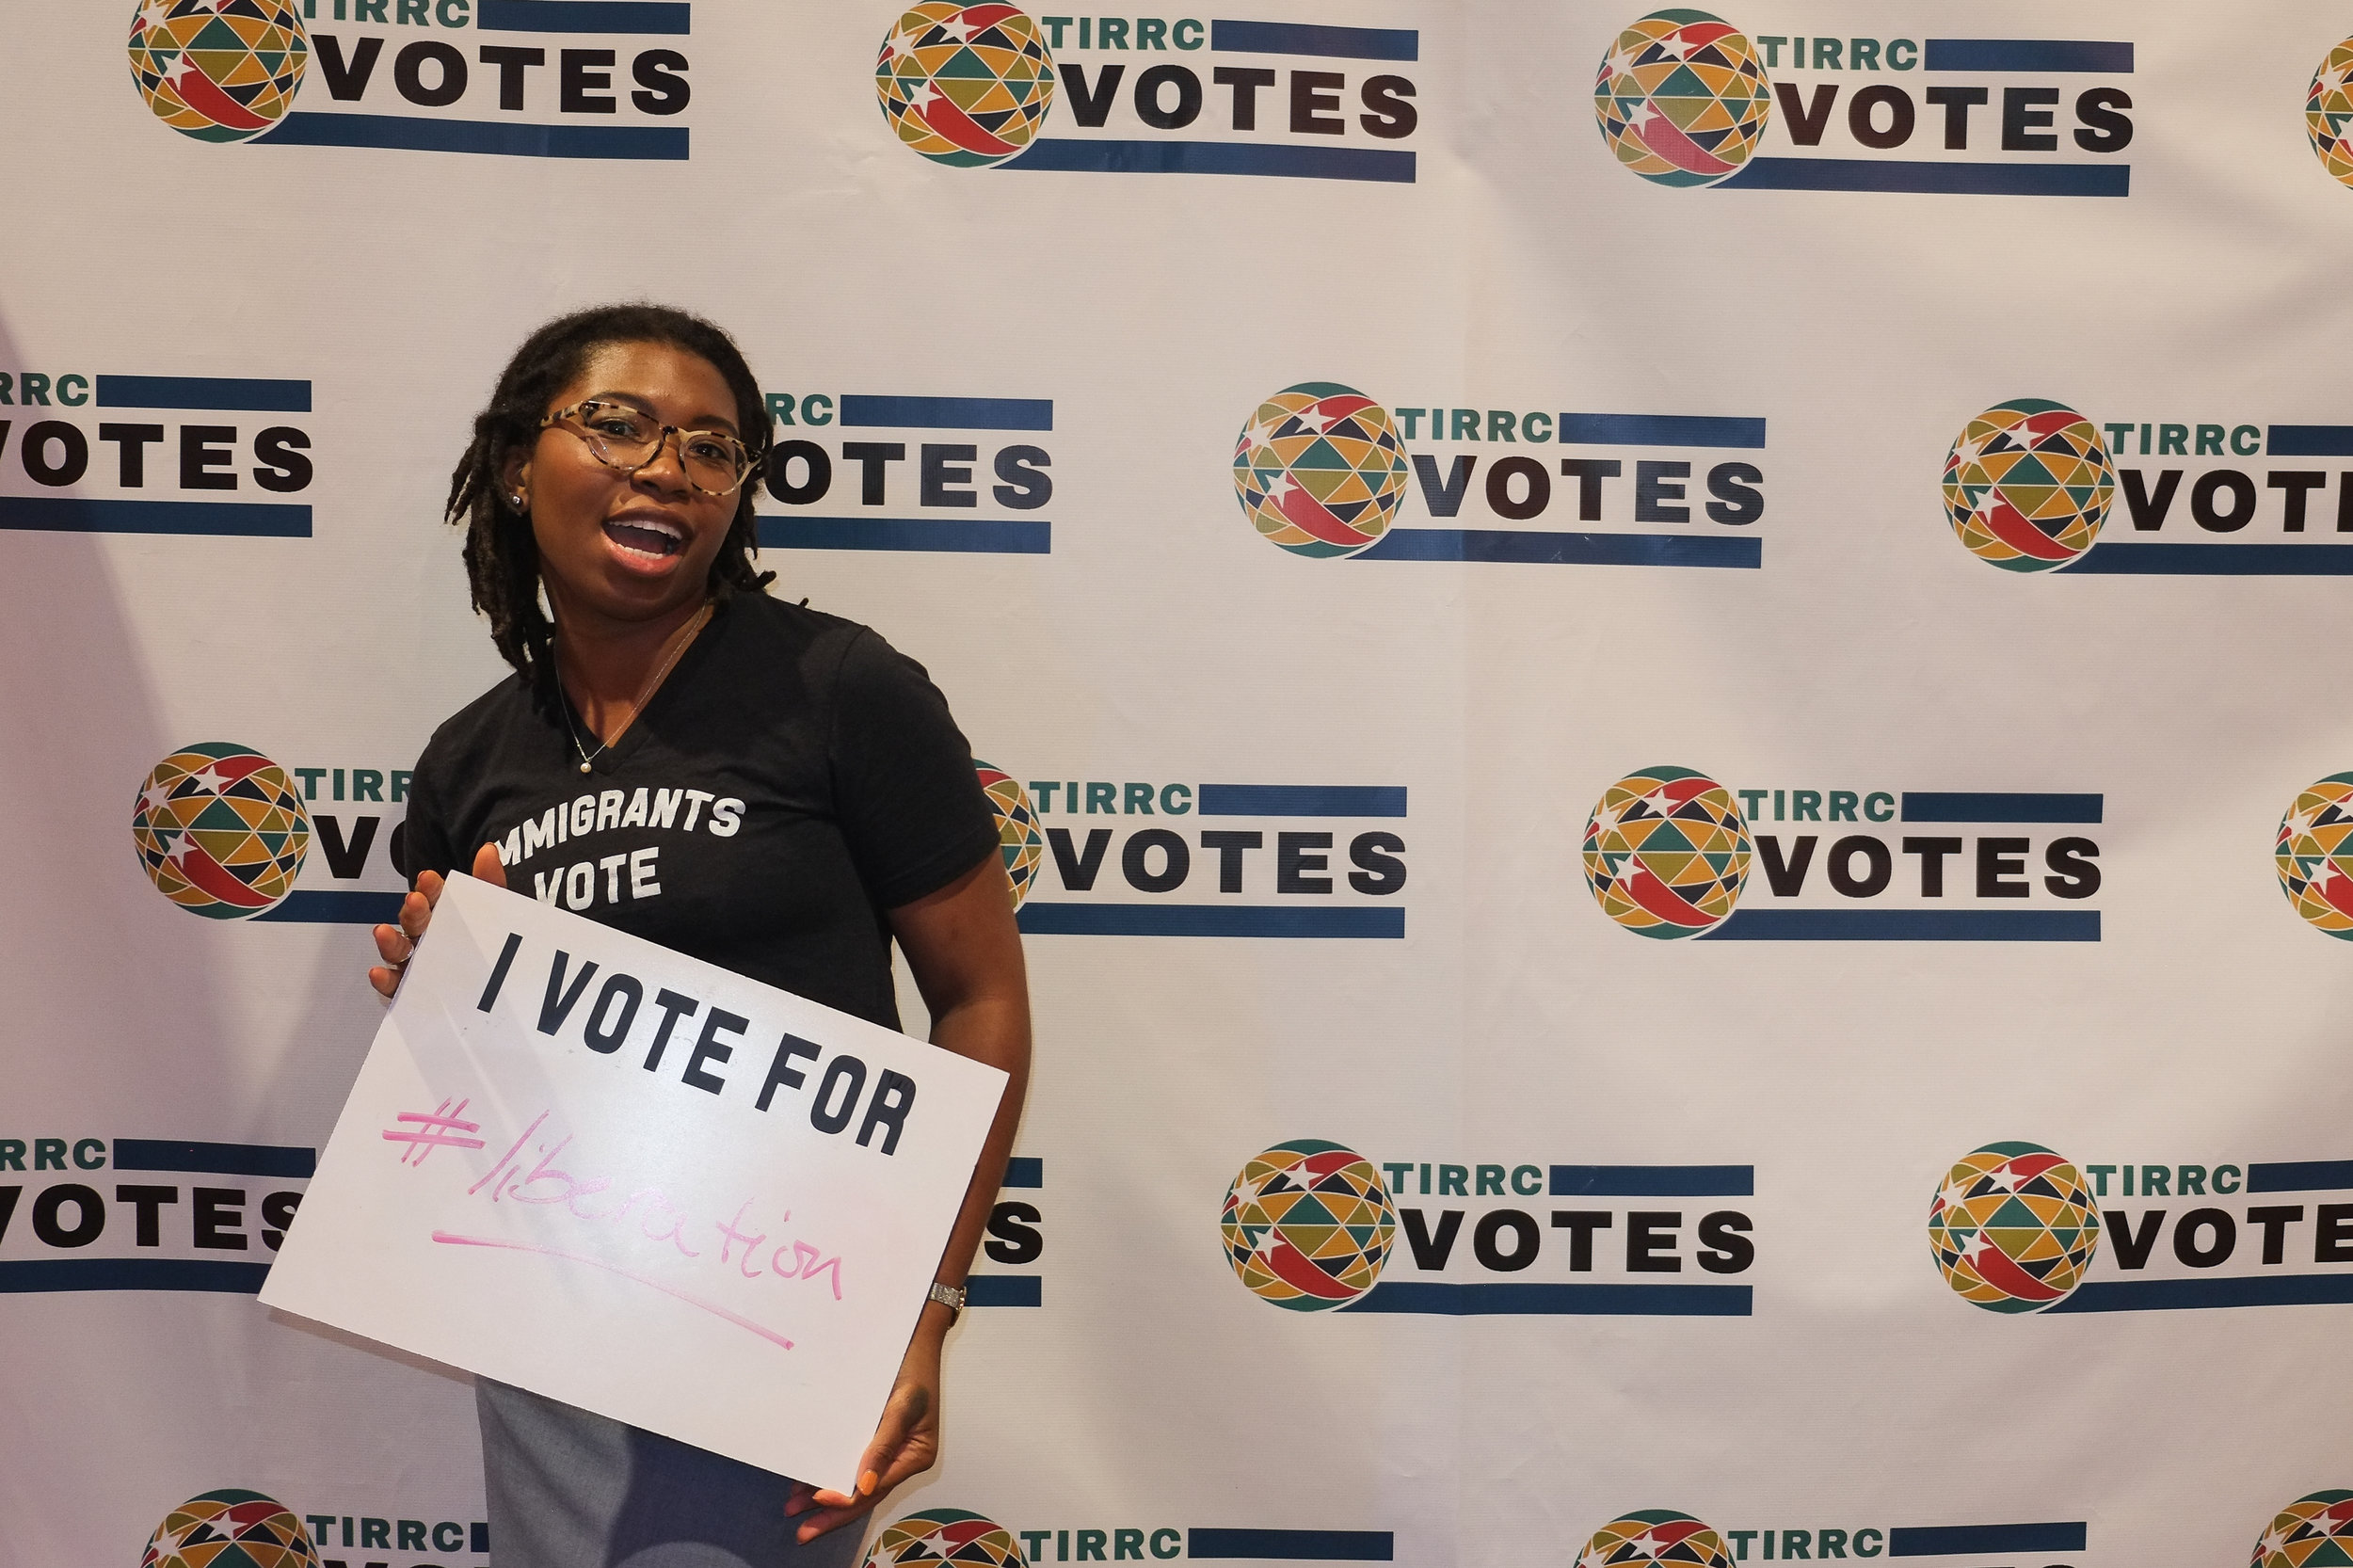 TIRRCVotes-PhotoBooth-38.jpg